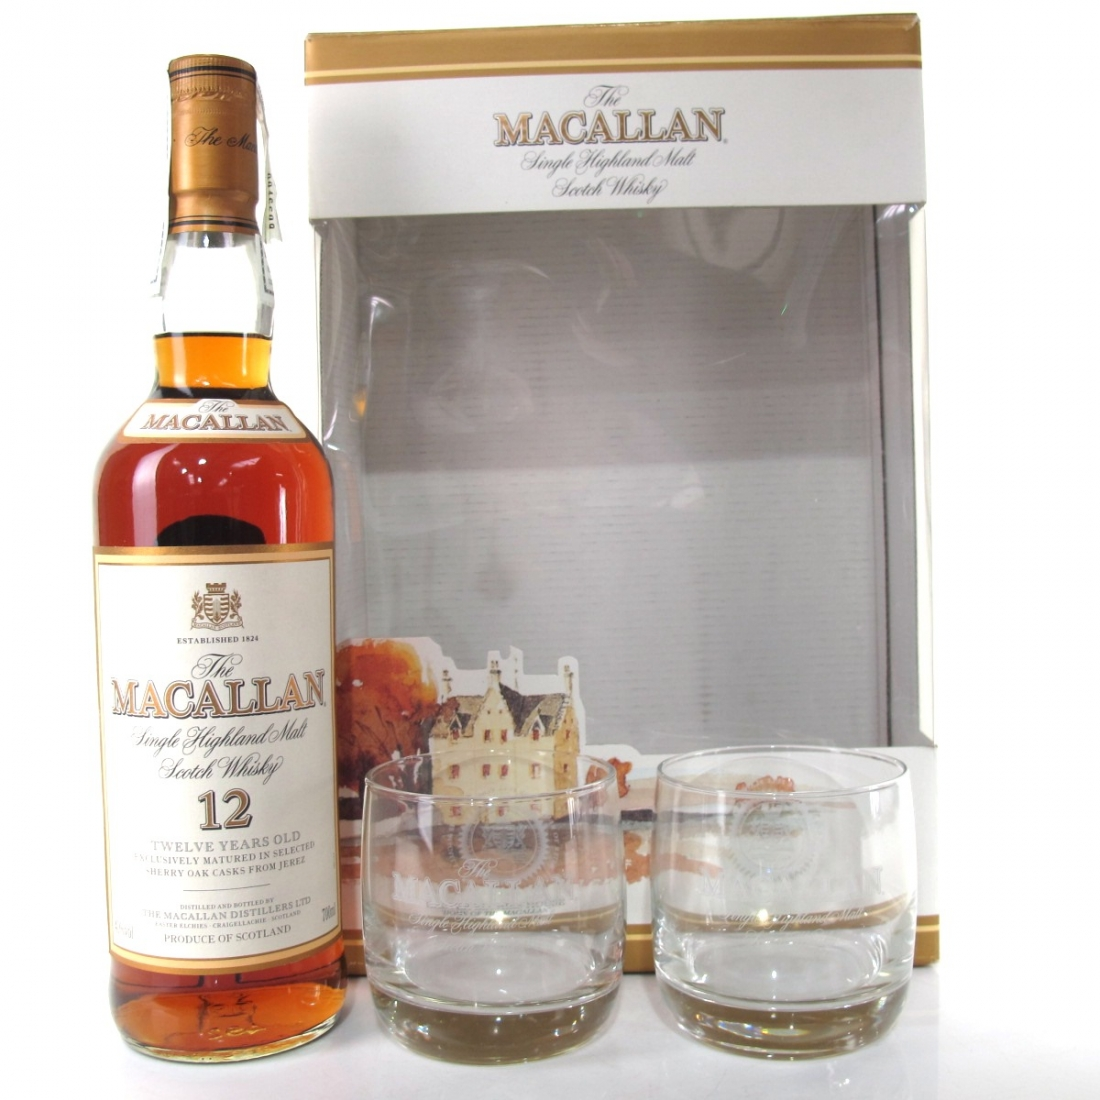 Macallan 12 Year Old / with Glasses x 2